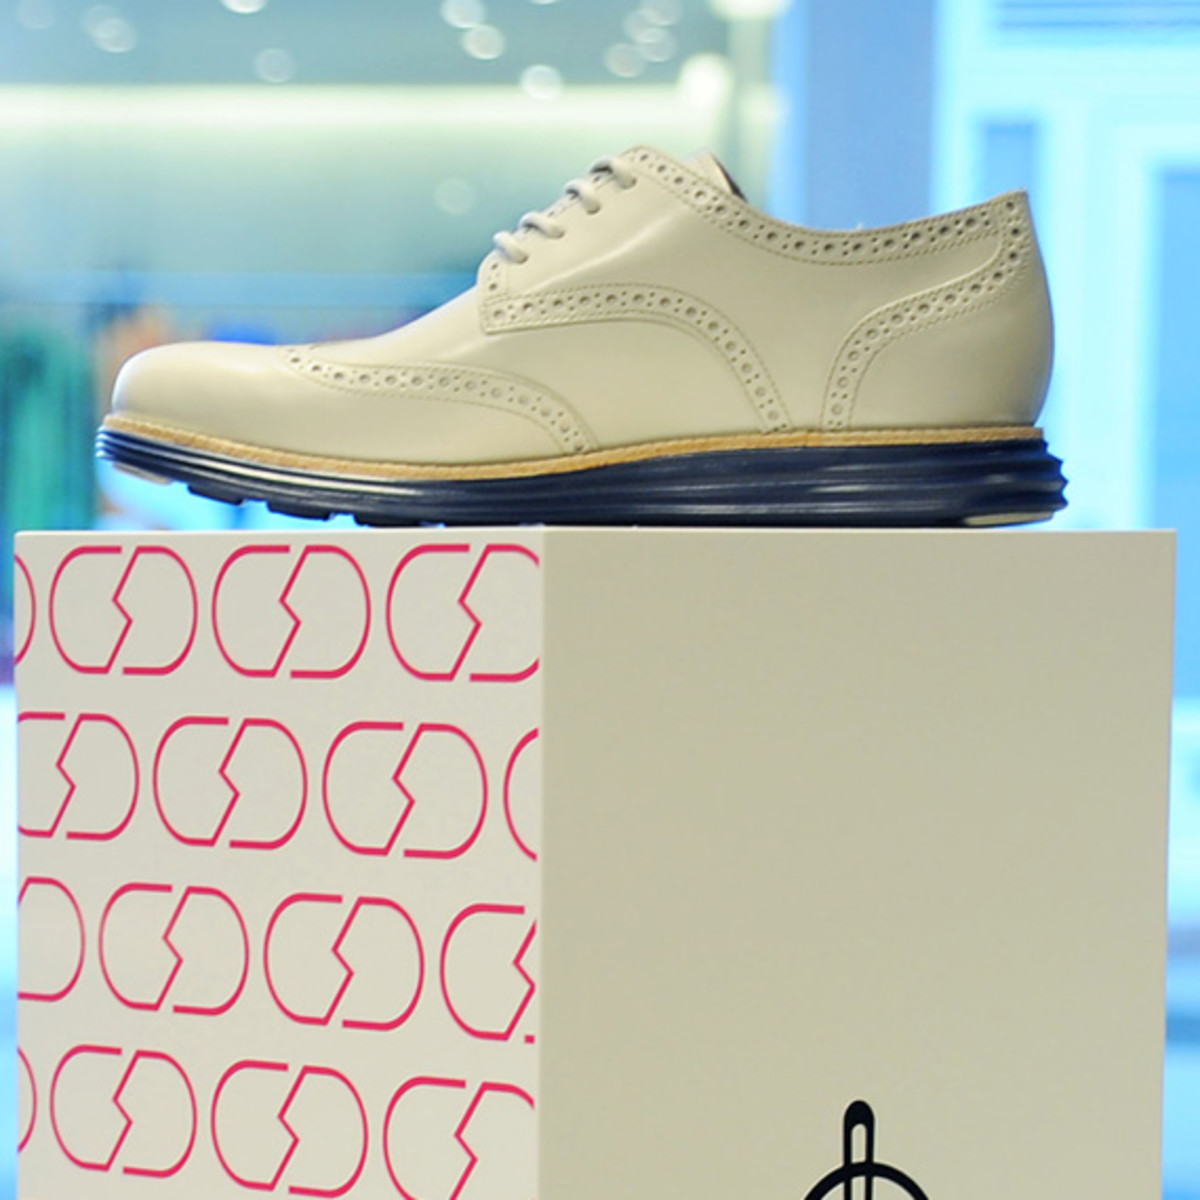 fragment-design-cole-haan-lunargrand-collection-launch-04